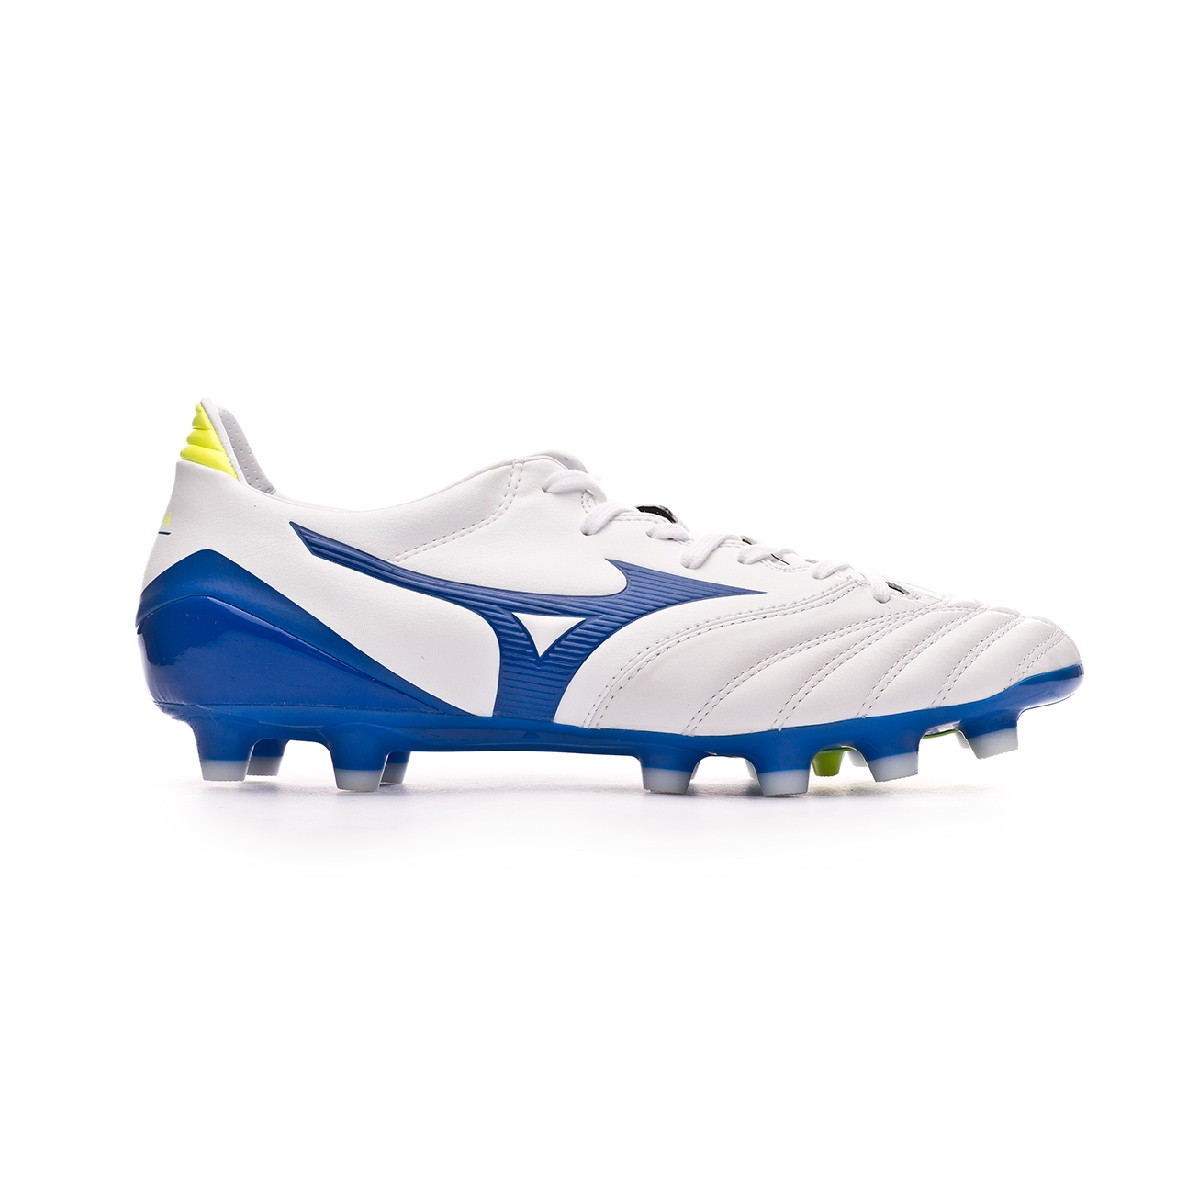 buy cheap 97db5 1b43c Bota Morelia Neo KL II White-Wave cup blue-Safety yellow